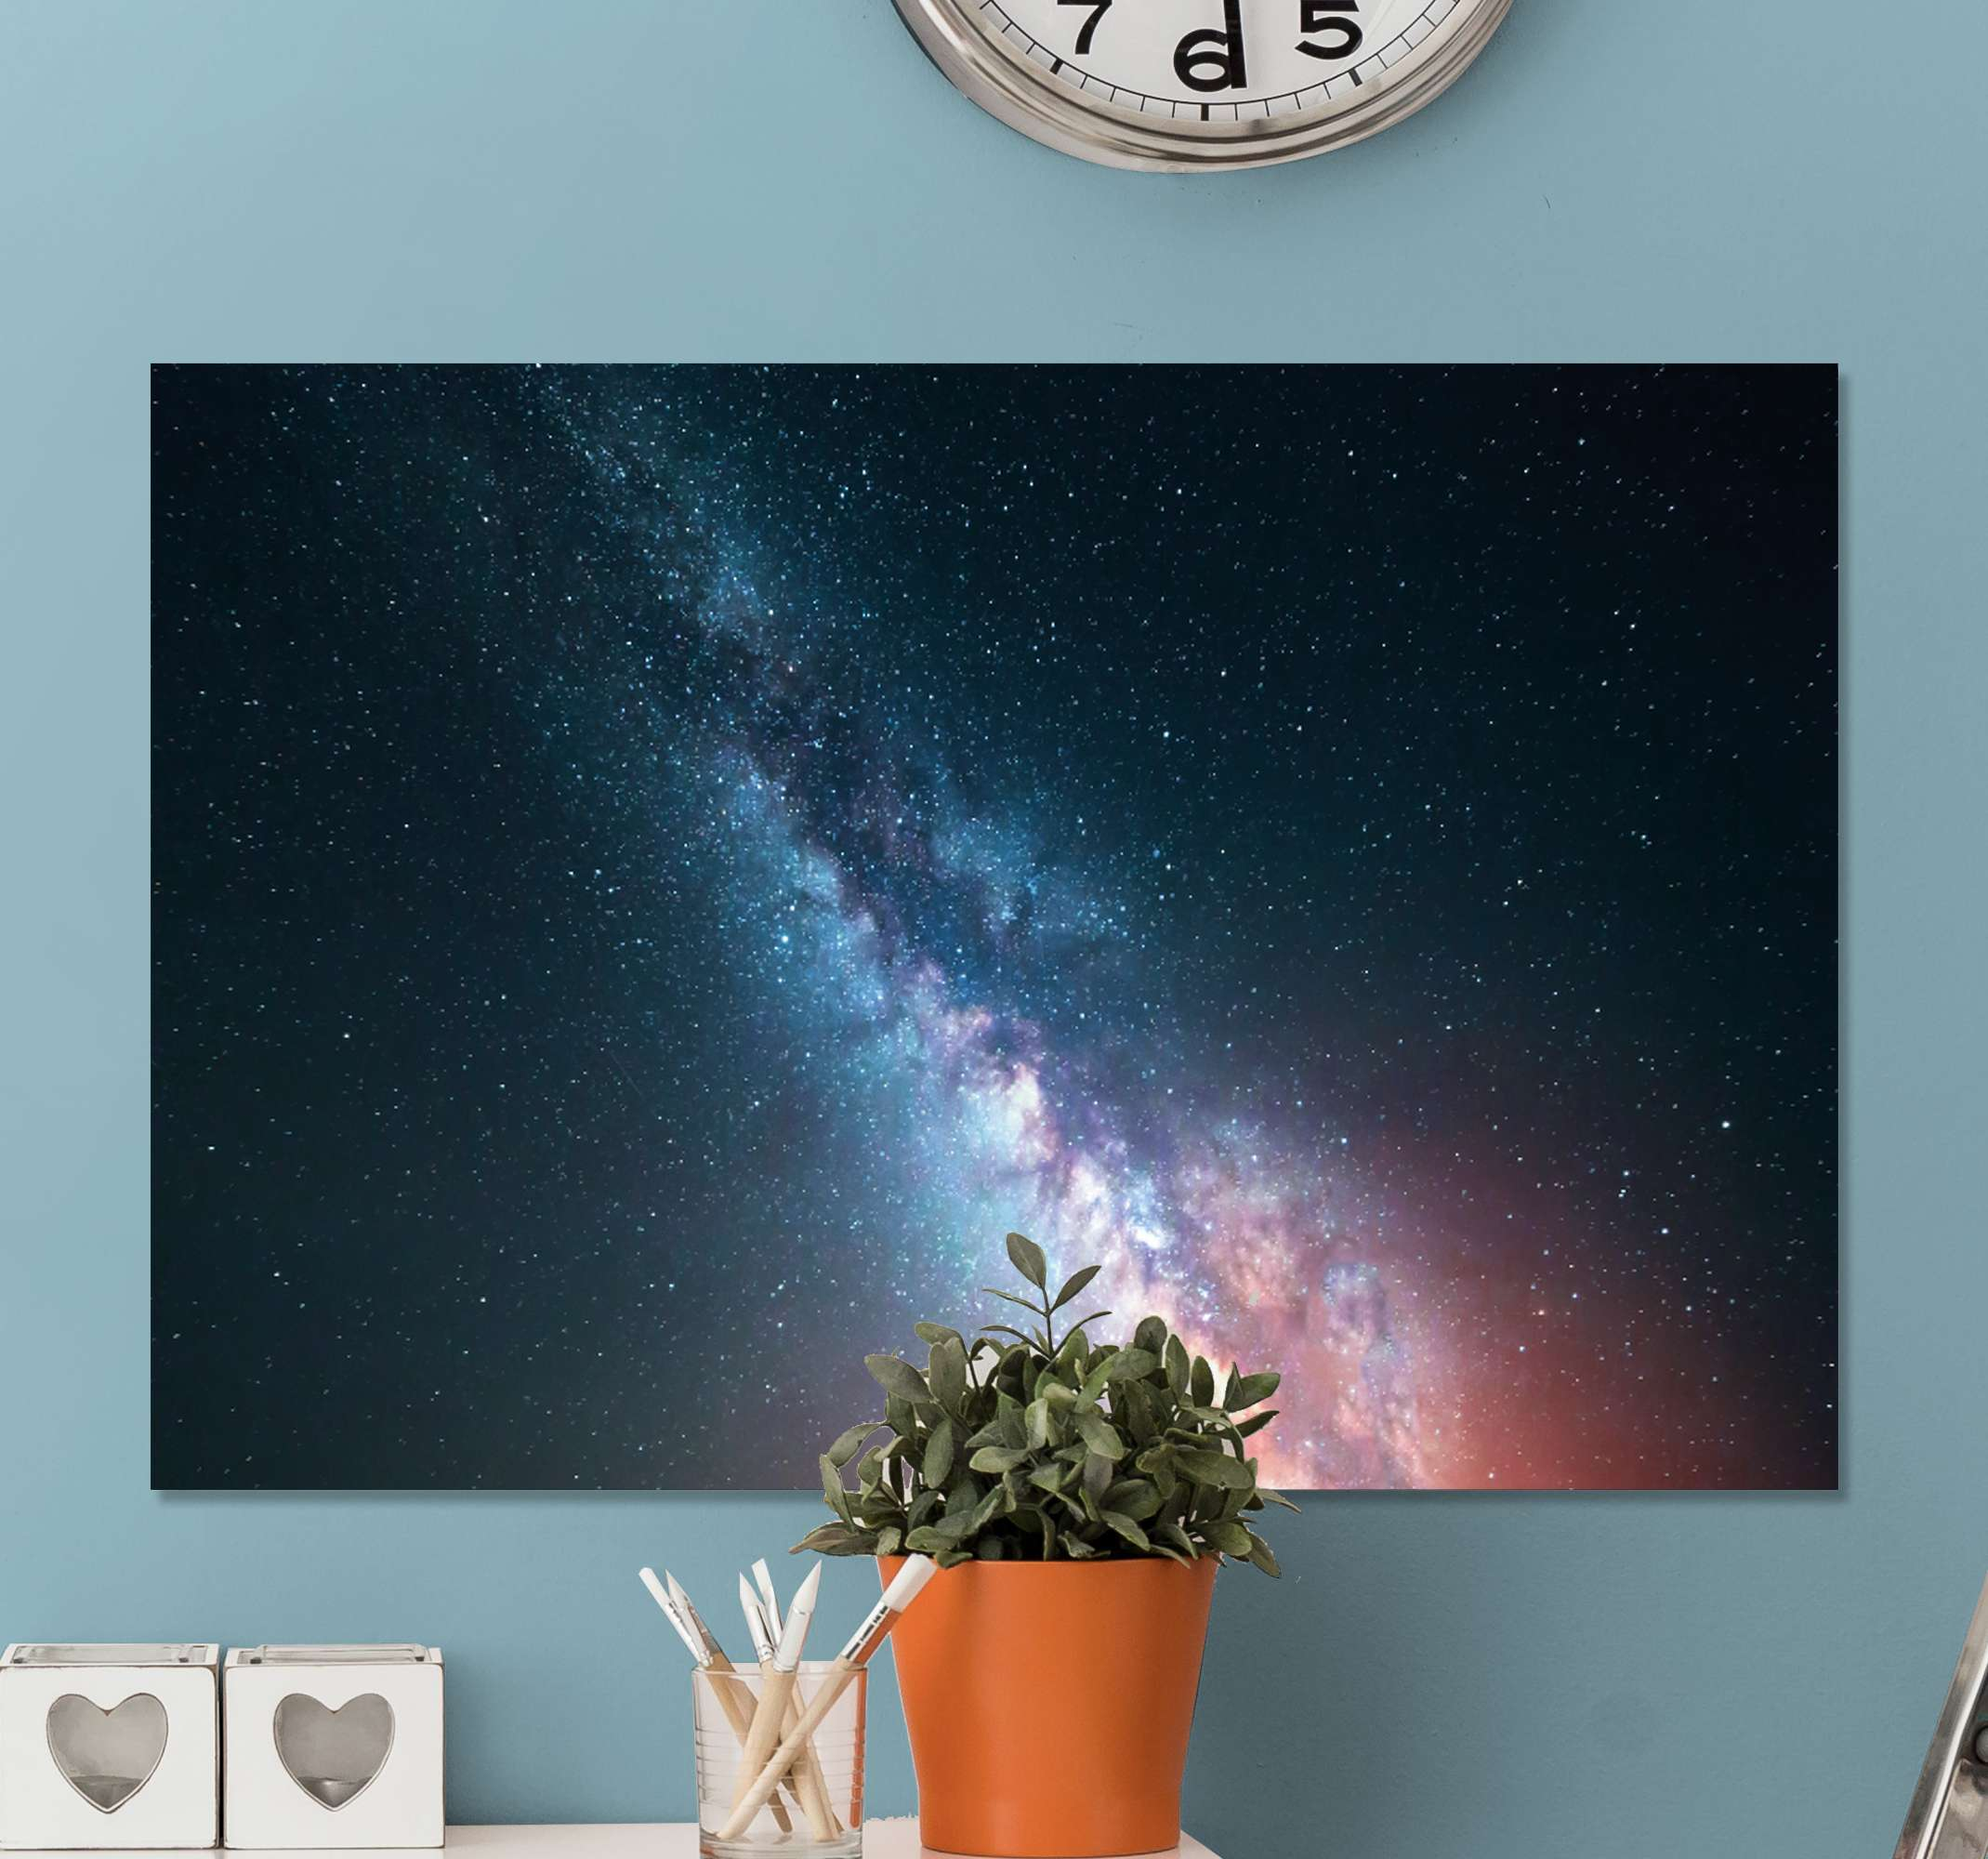 TenStickers. Star sky blue night modern art prints on canvas. Star sky blue night modern canvas wall art. Simple space canvas design illustrating the appearance of stars at night. It is original and durable.